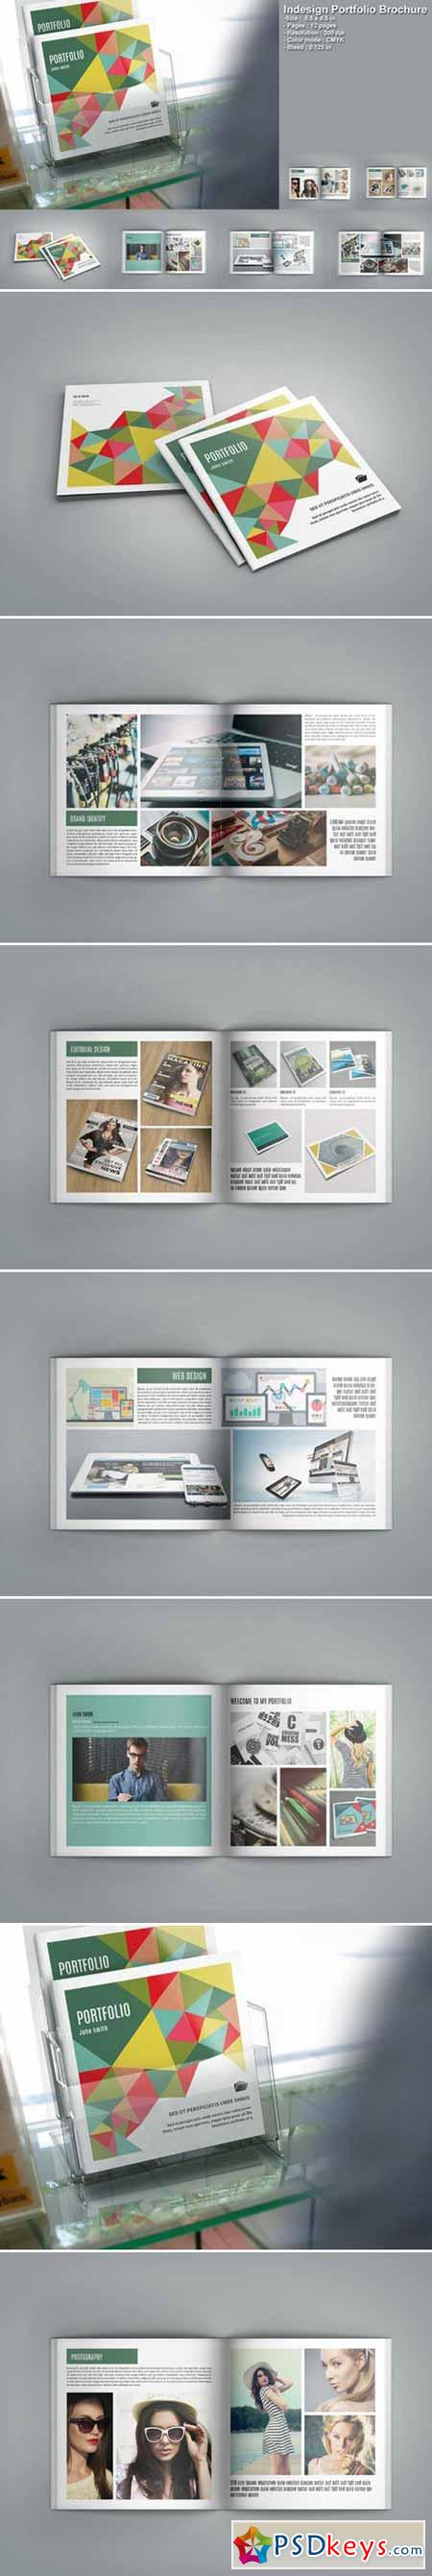 Indesign » page 18 » Free Download Photoshop Vector Stock